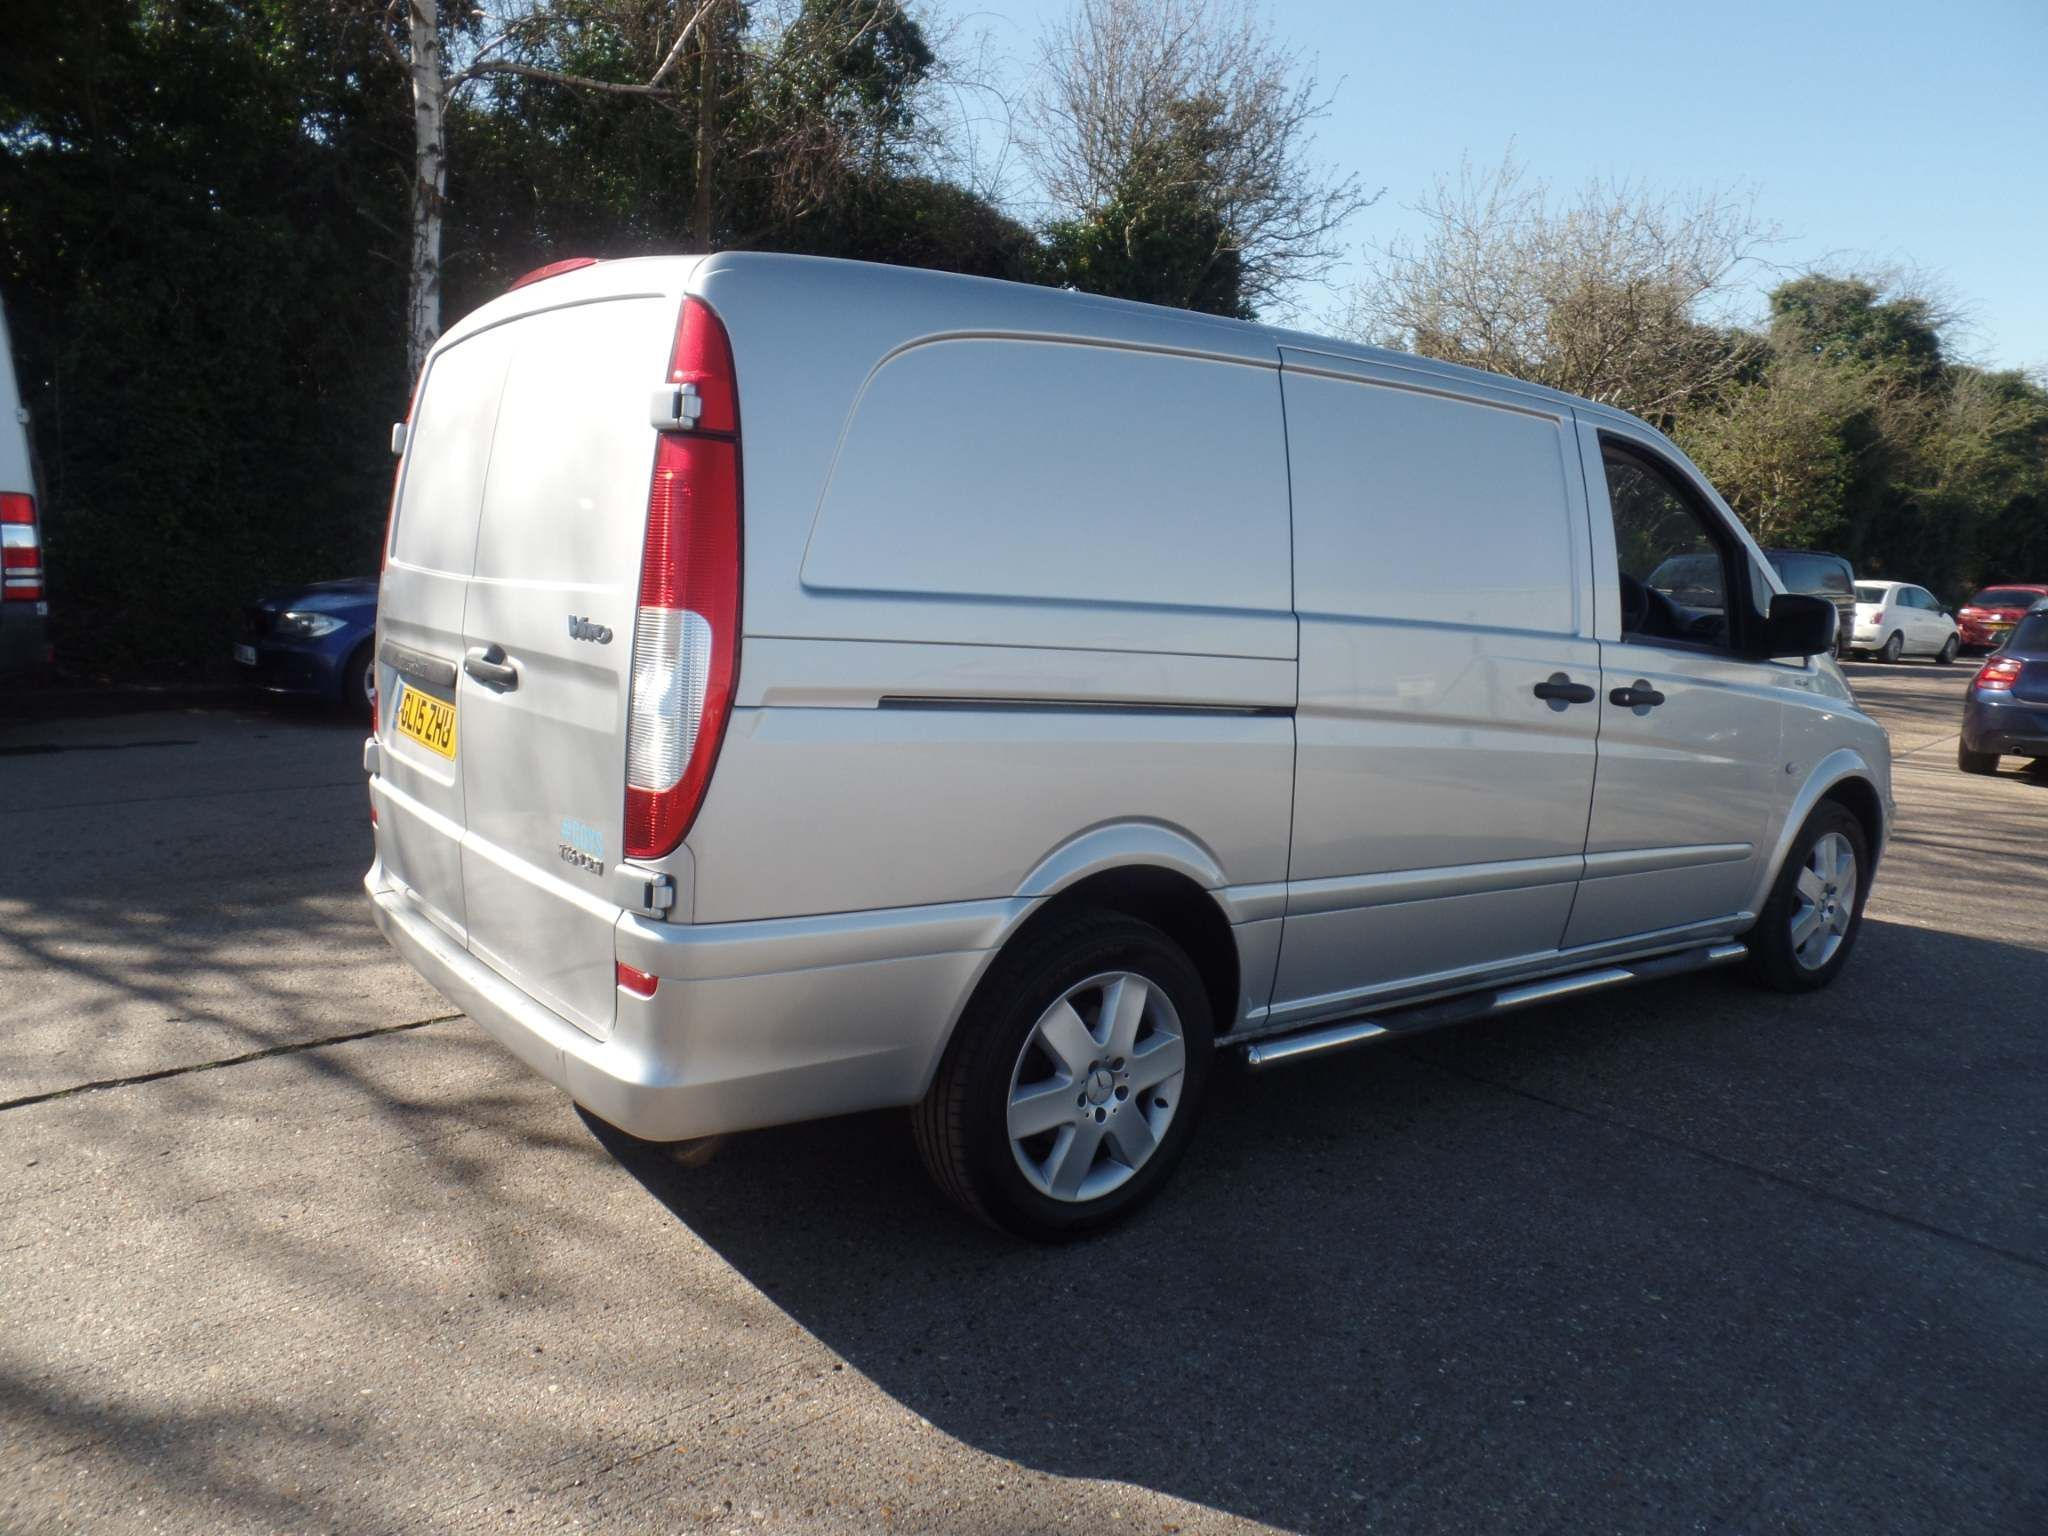 Mercedes-Benz Vito 2.1 116CDI BlueEFFICIENCY Long Panel Van 5dr (EU5) - image 5